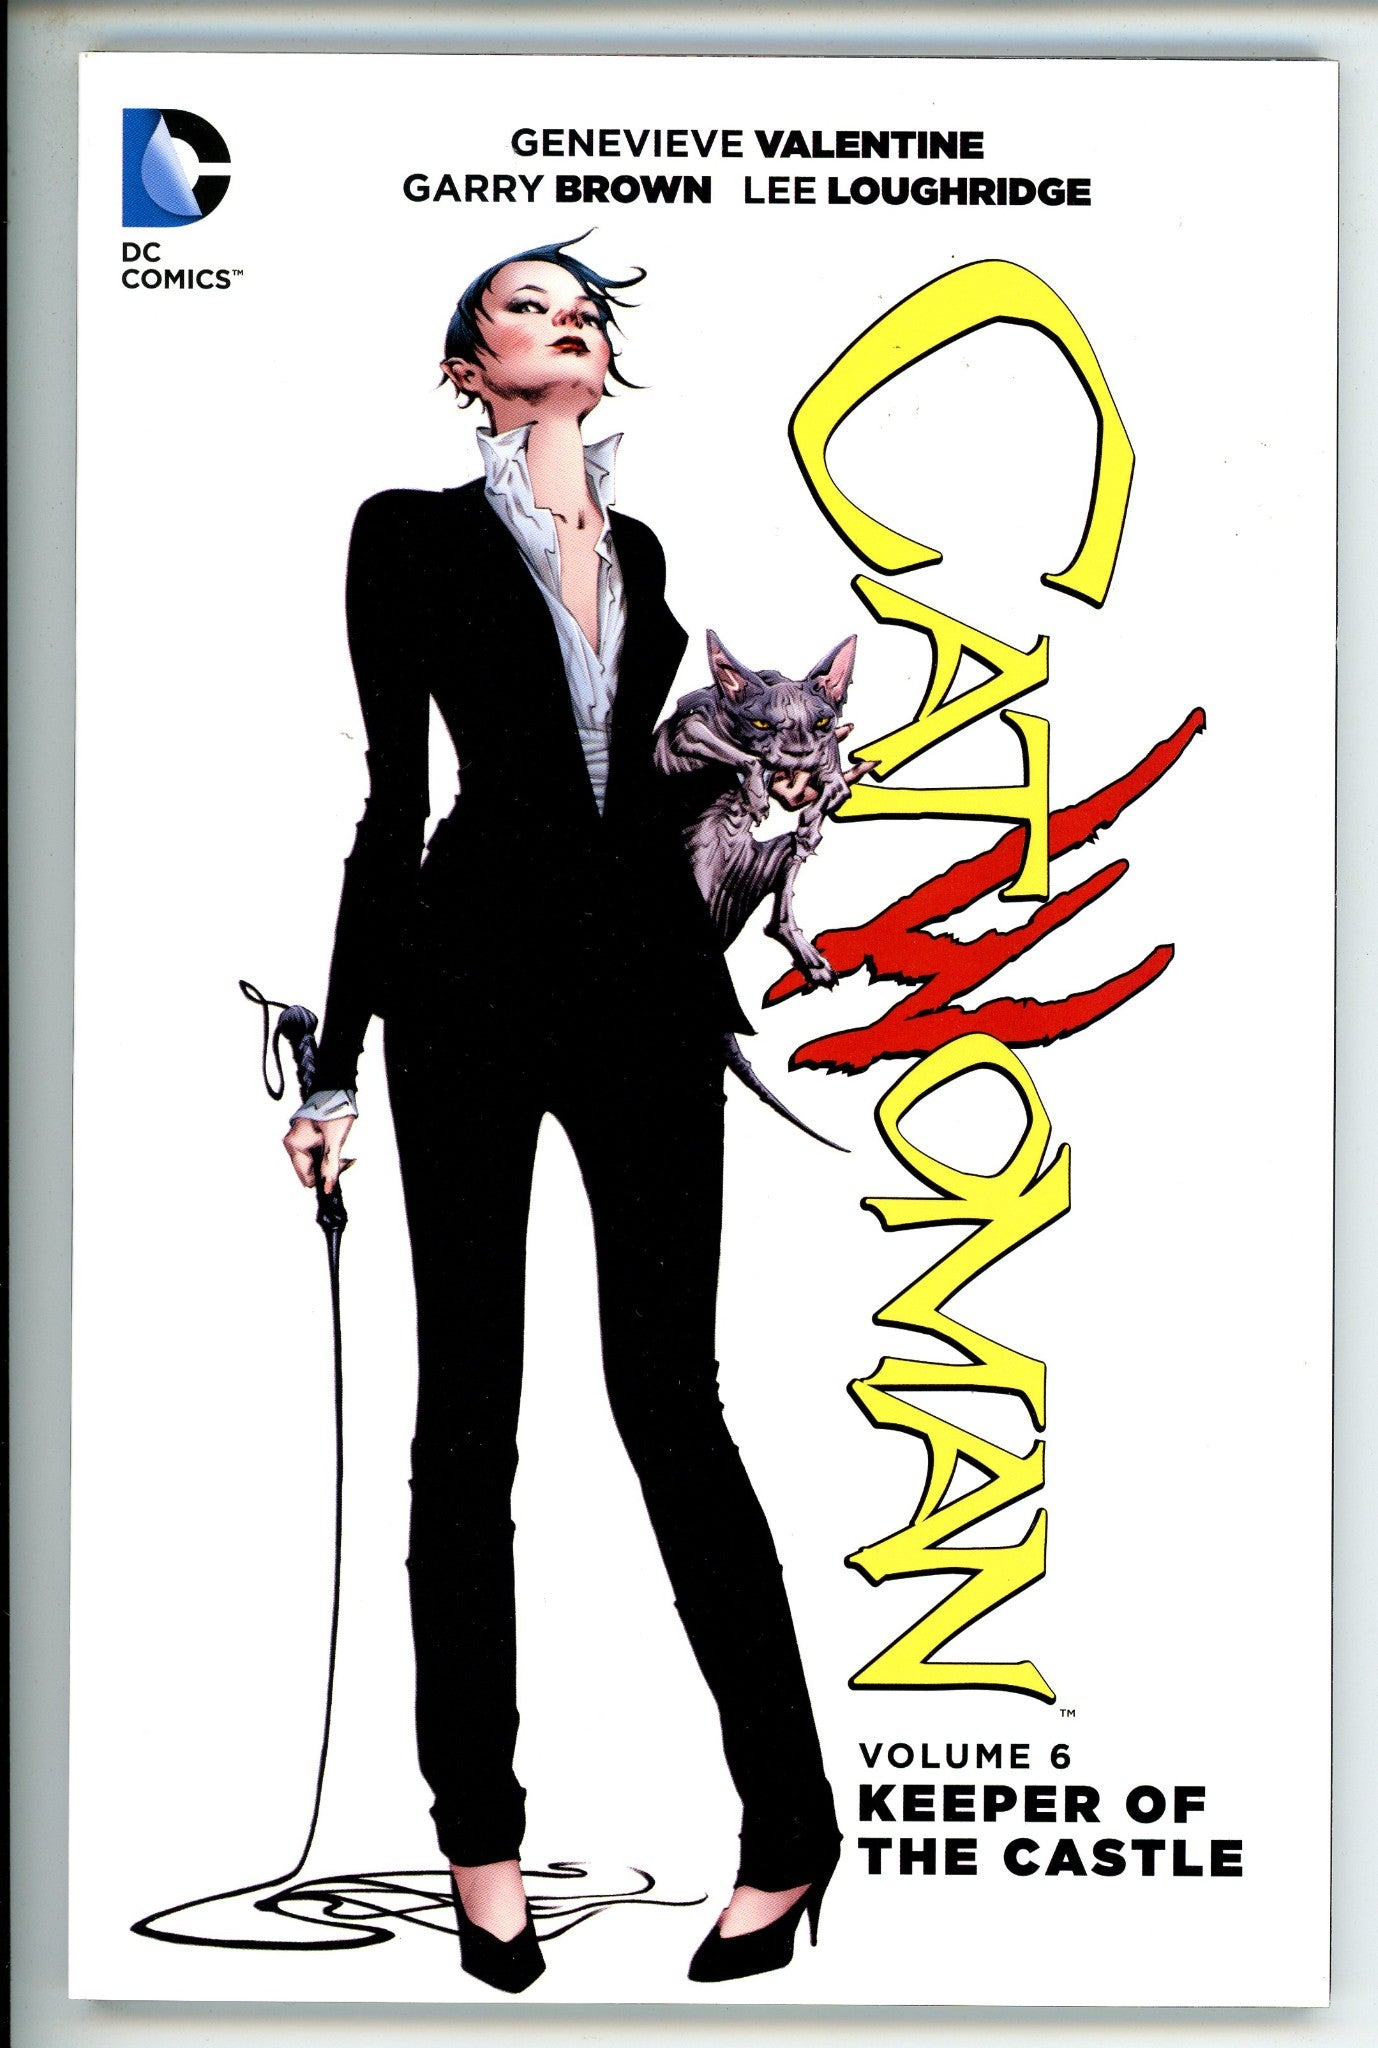 Catwoman Vol 6 Keeper of the Castle TP